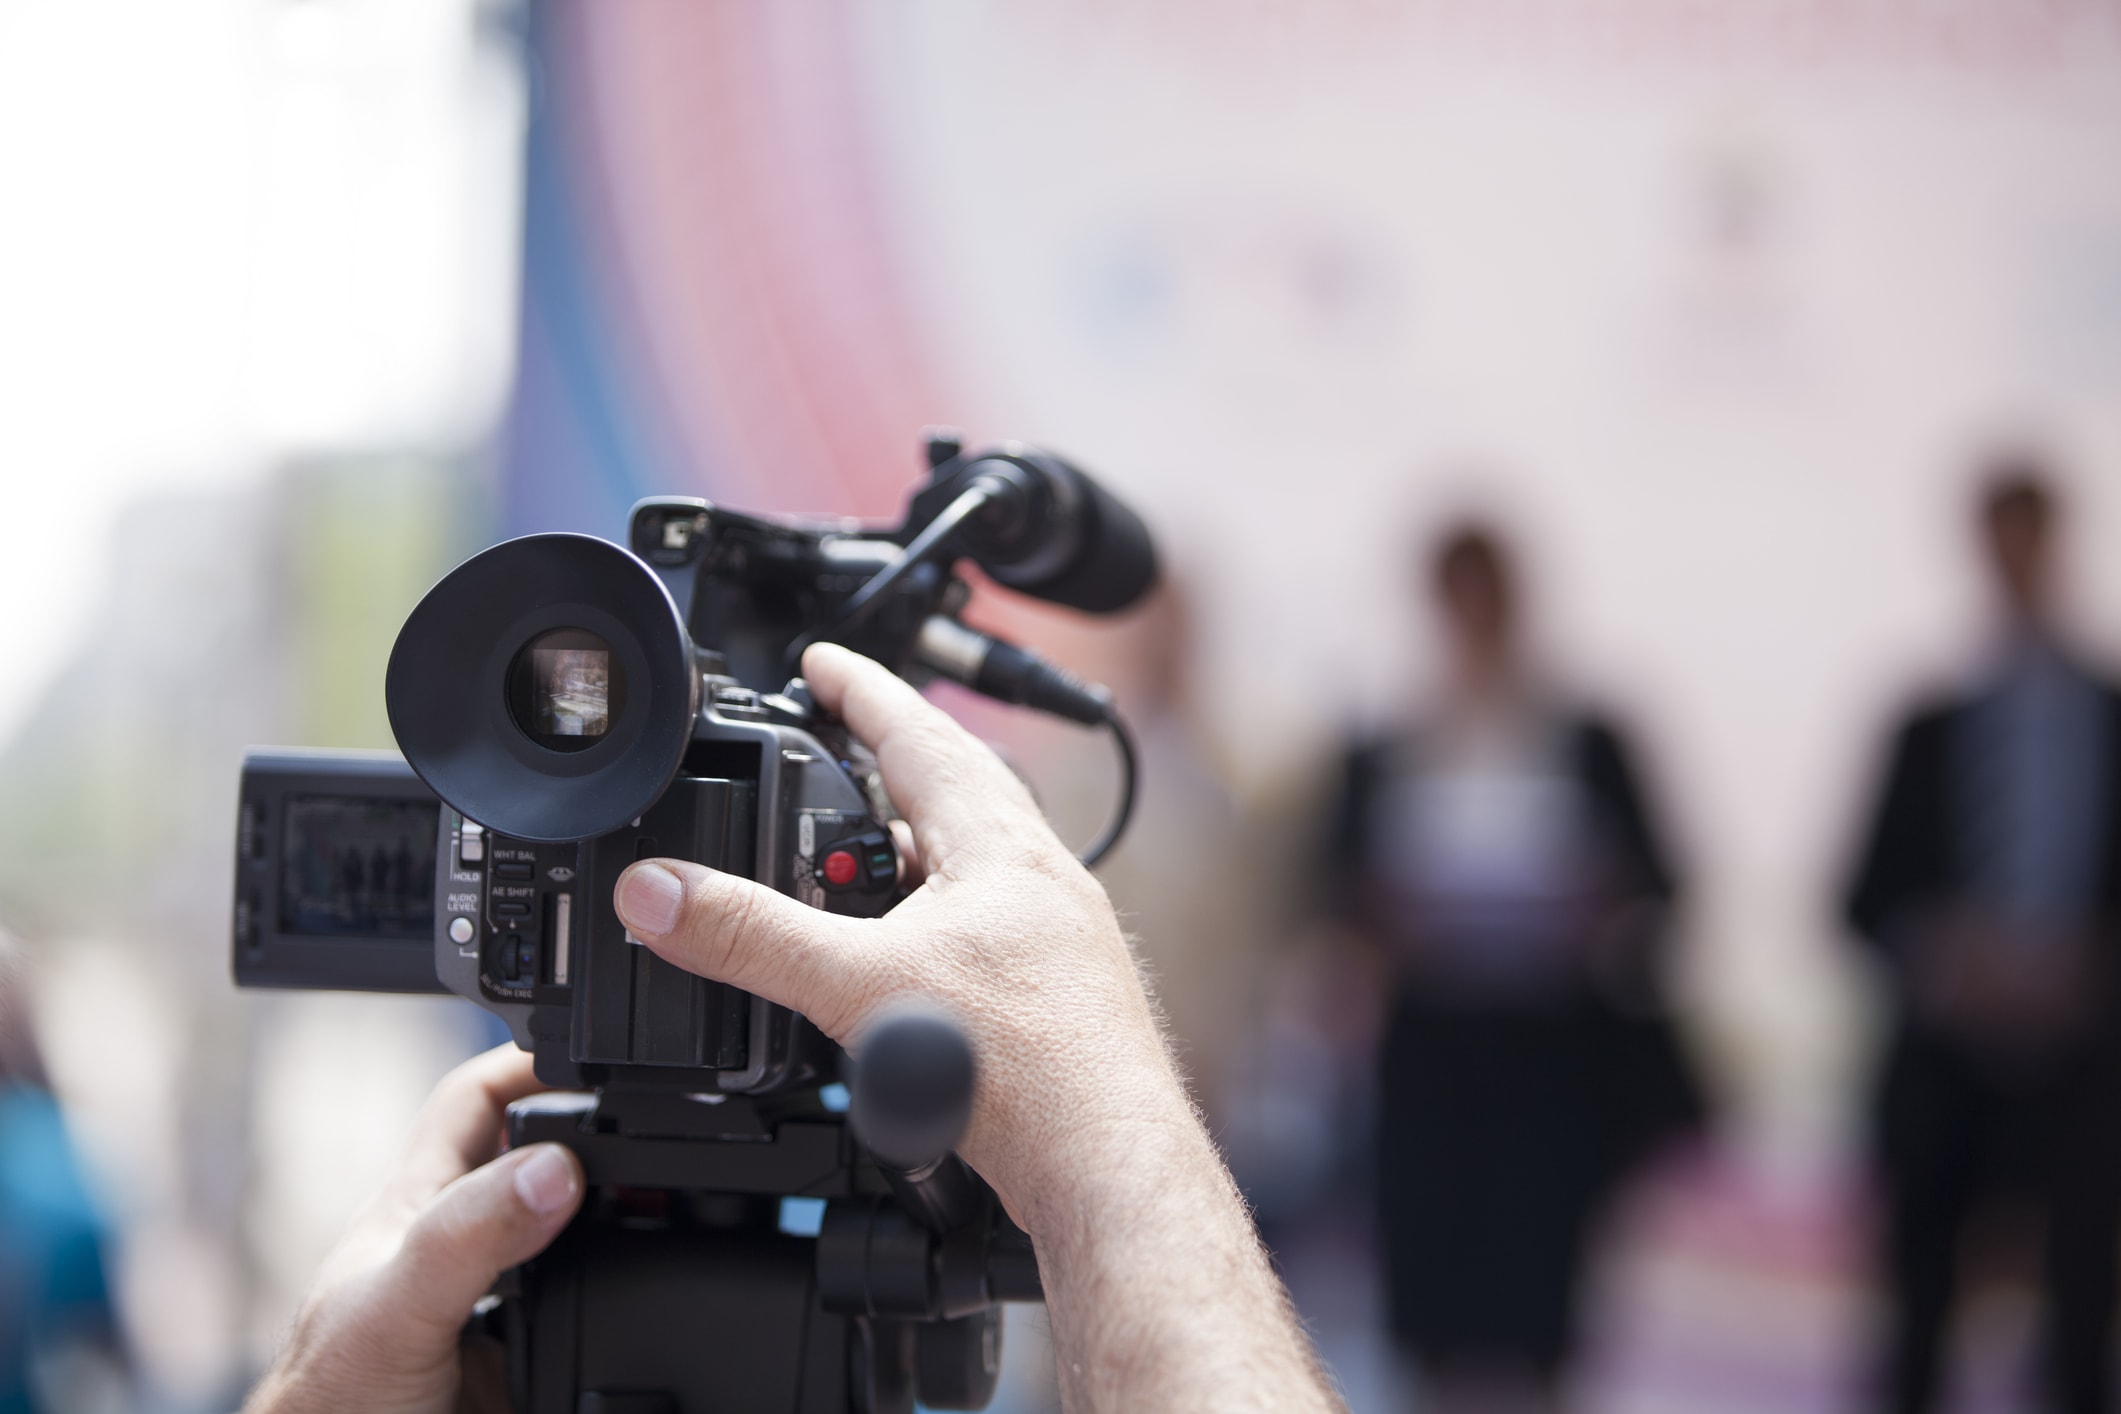 how to broadcast live video camera in action